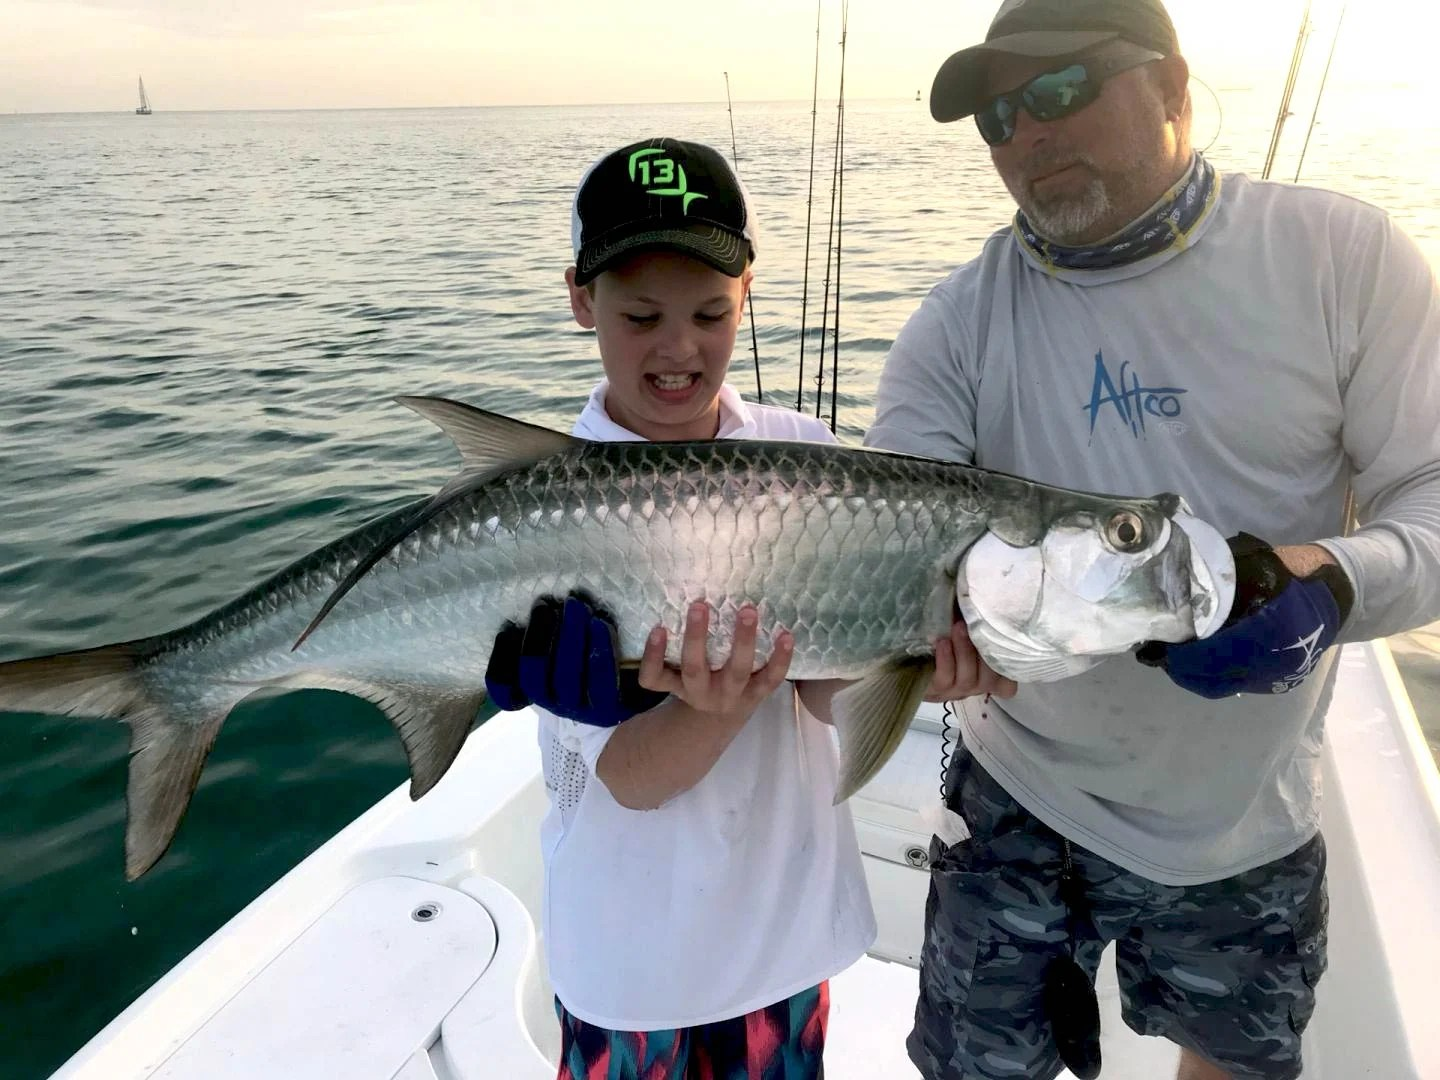 A man and a little boy holding a big Tarpon on a boat in Dry Tortugas